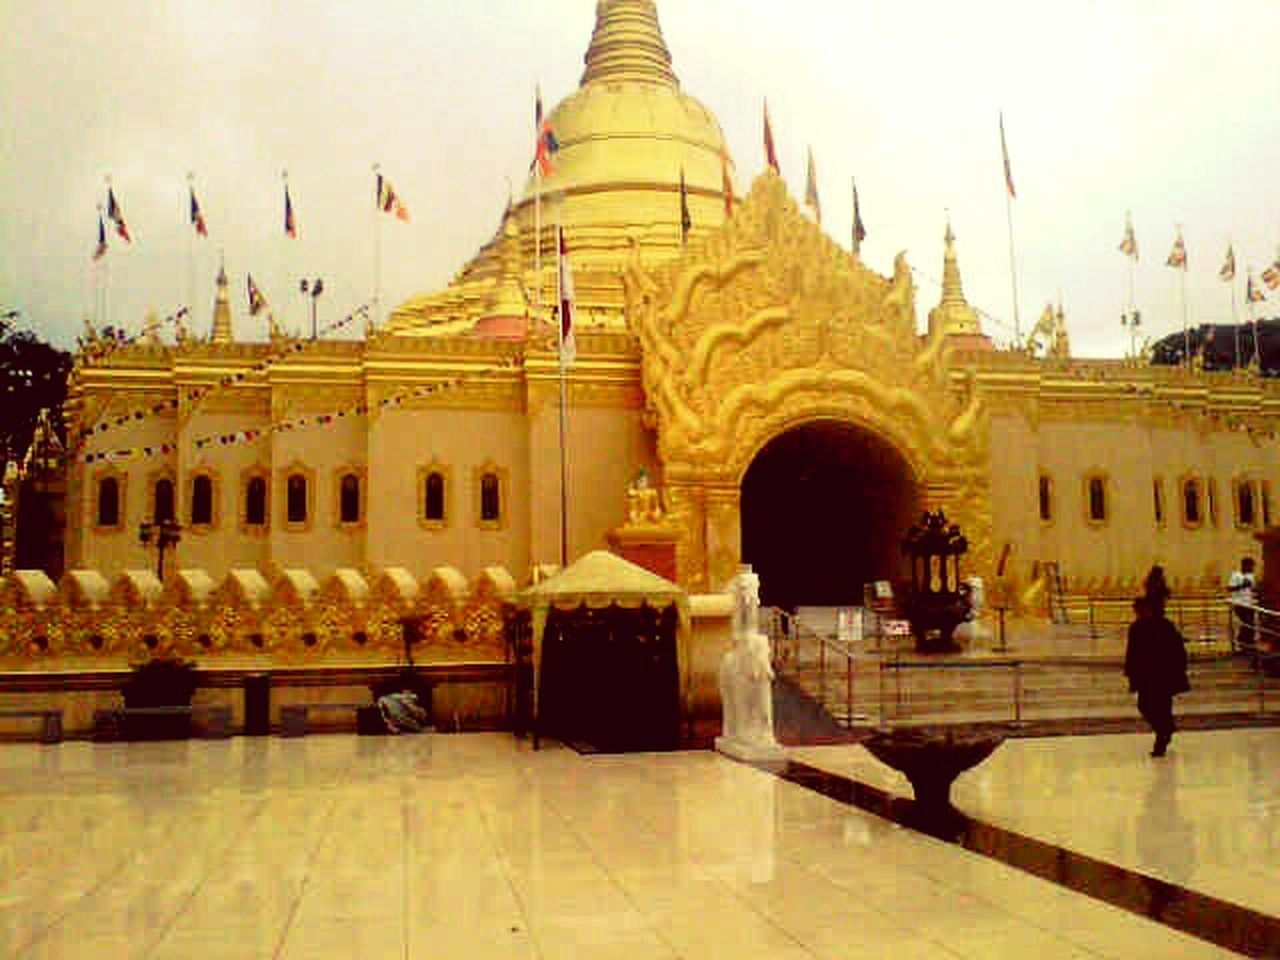 Indonesia Culture Architecture Travel Destinations Built Structure Statue Sky Outdoors Day Reflection Vihara Buddist Temple INDONESIA